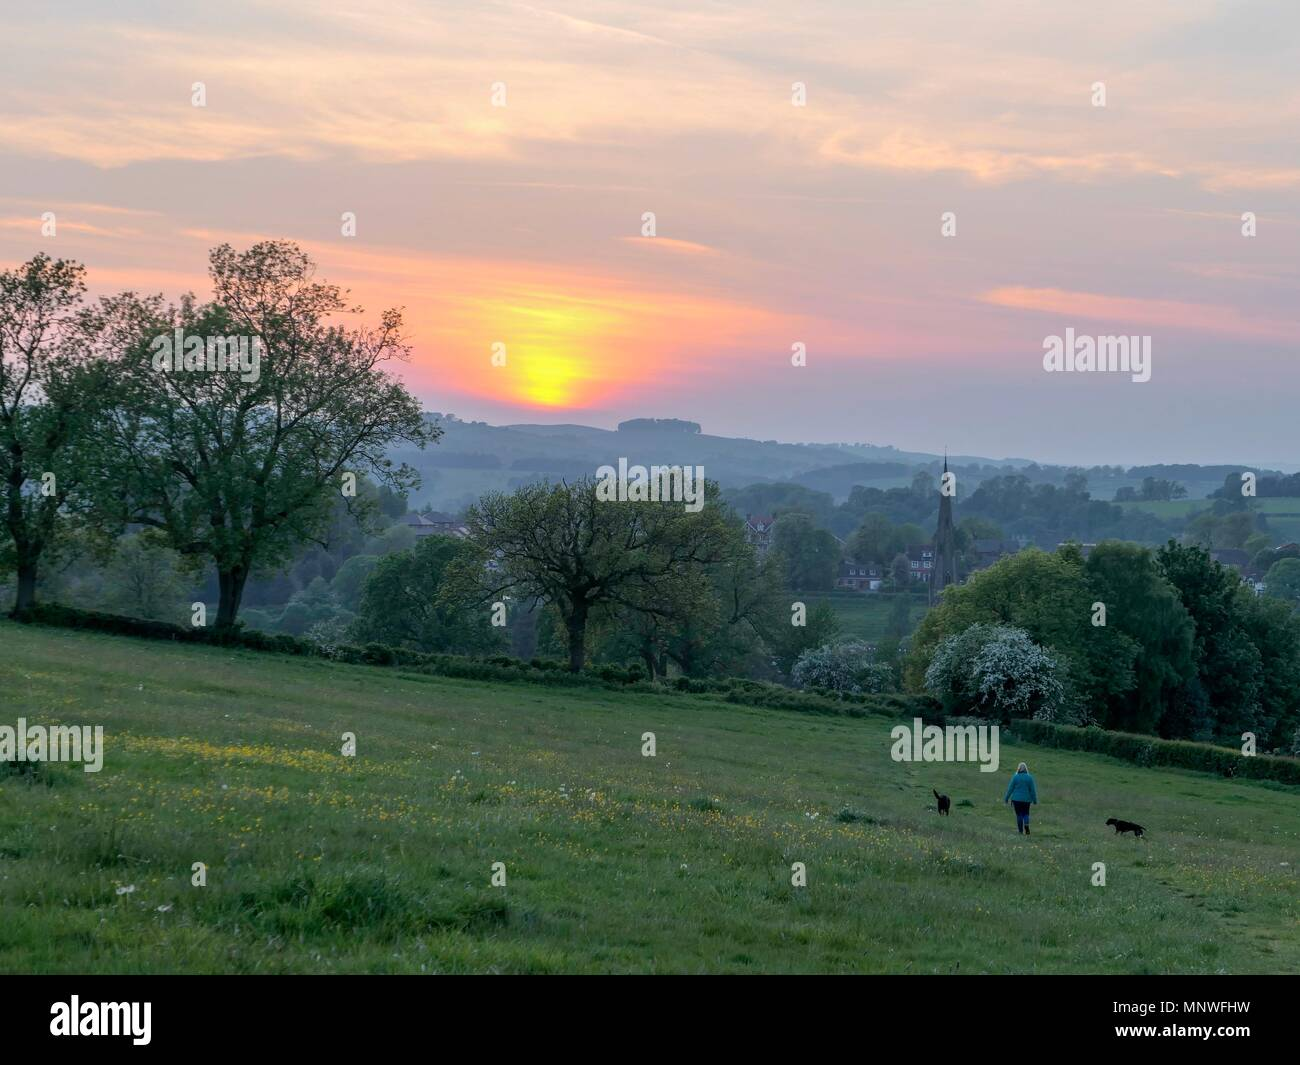 Derbyshire, UK. 19th May 2018. UK Weather: Woman's walking her dogs into a wonderful sunset over Ashbourne, Derbyshire, the gateway to the Peak District National Park Credit: Doug Blane/Alamy Live NewsStock Photo